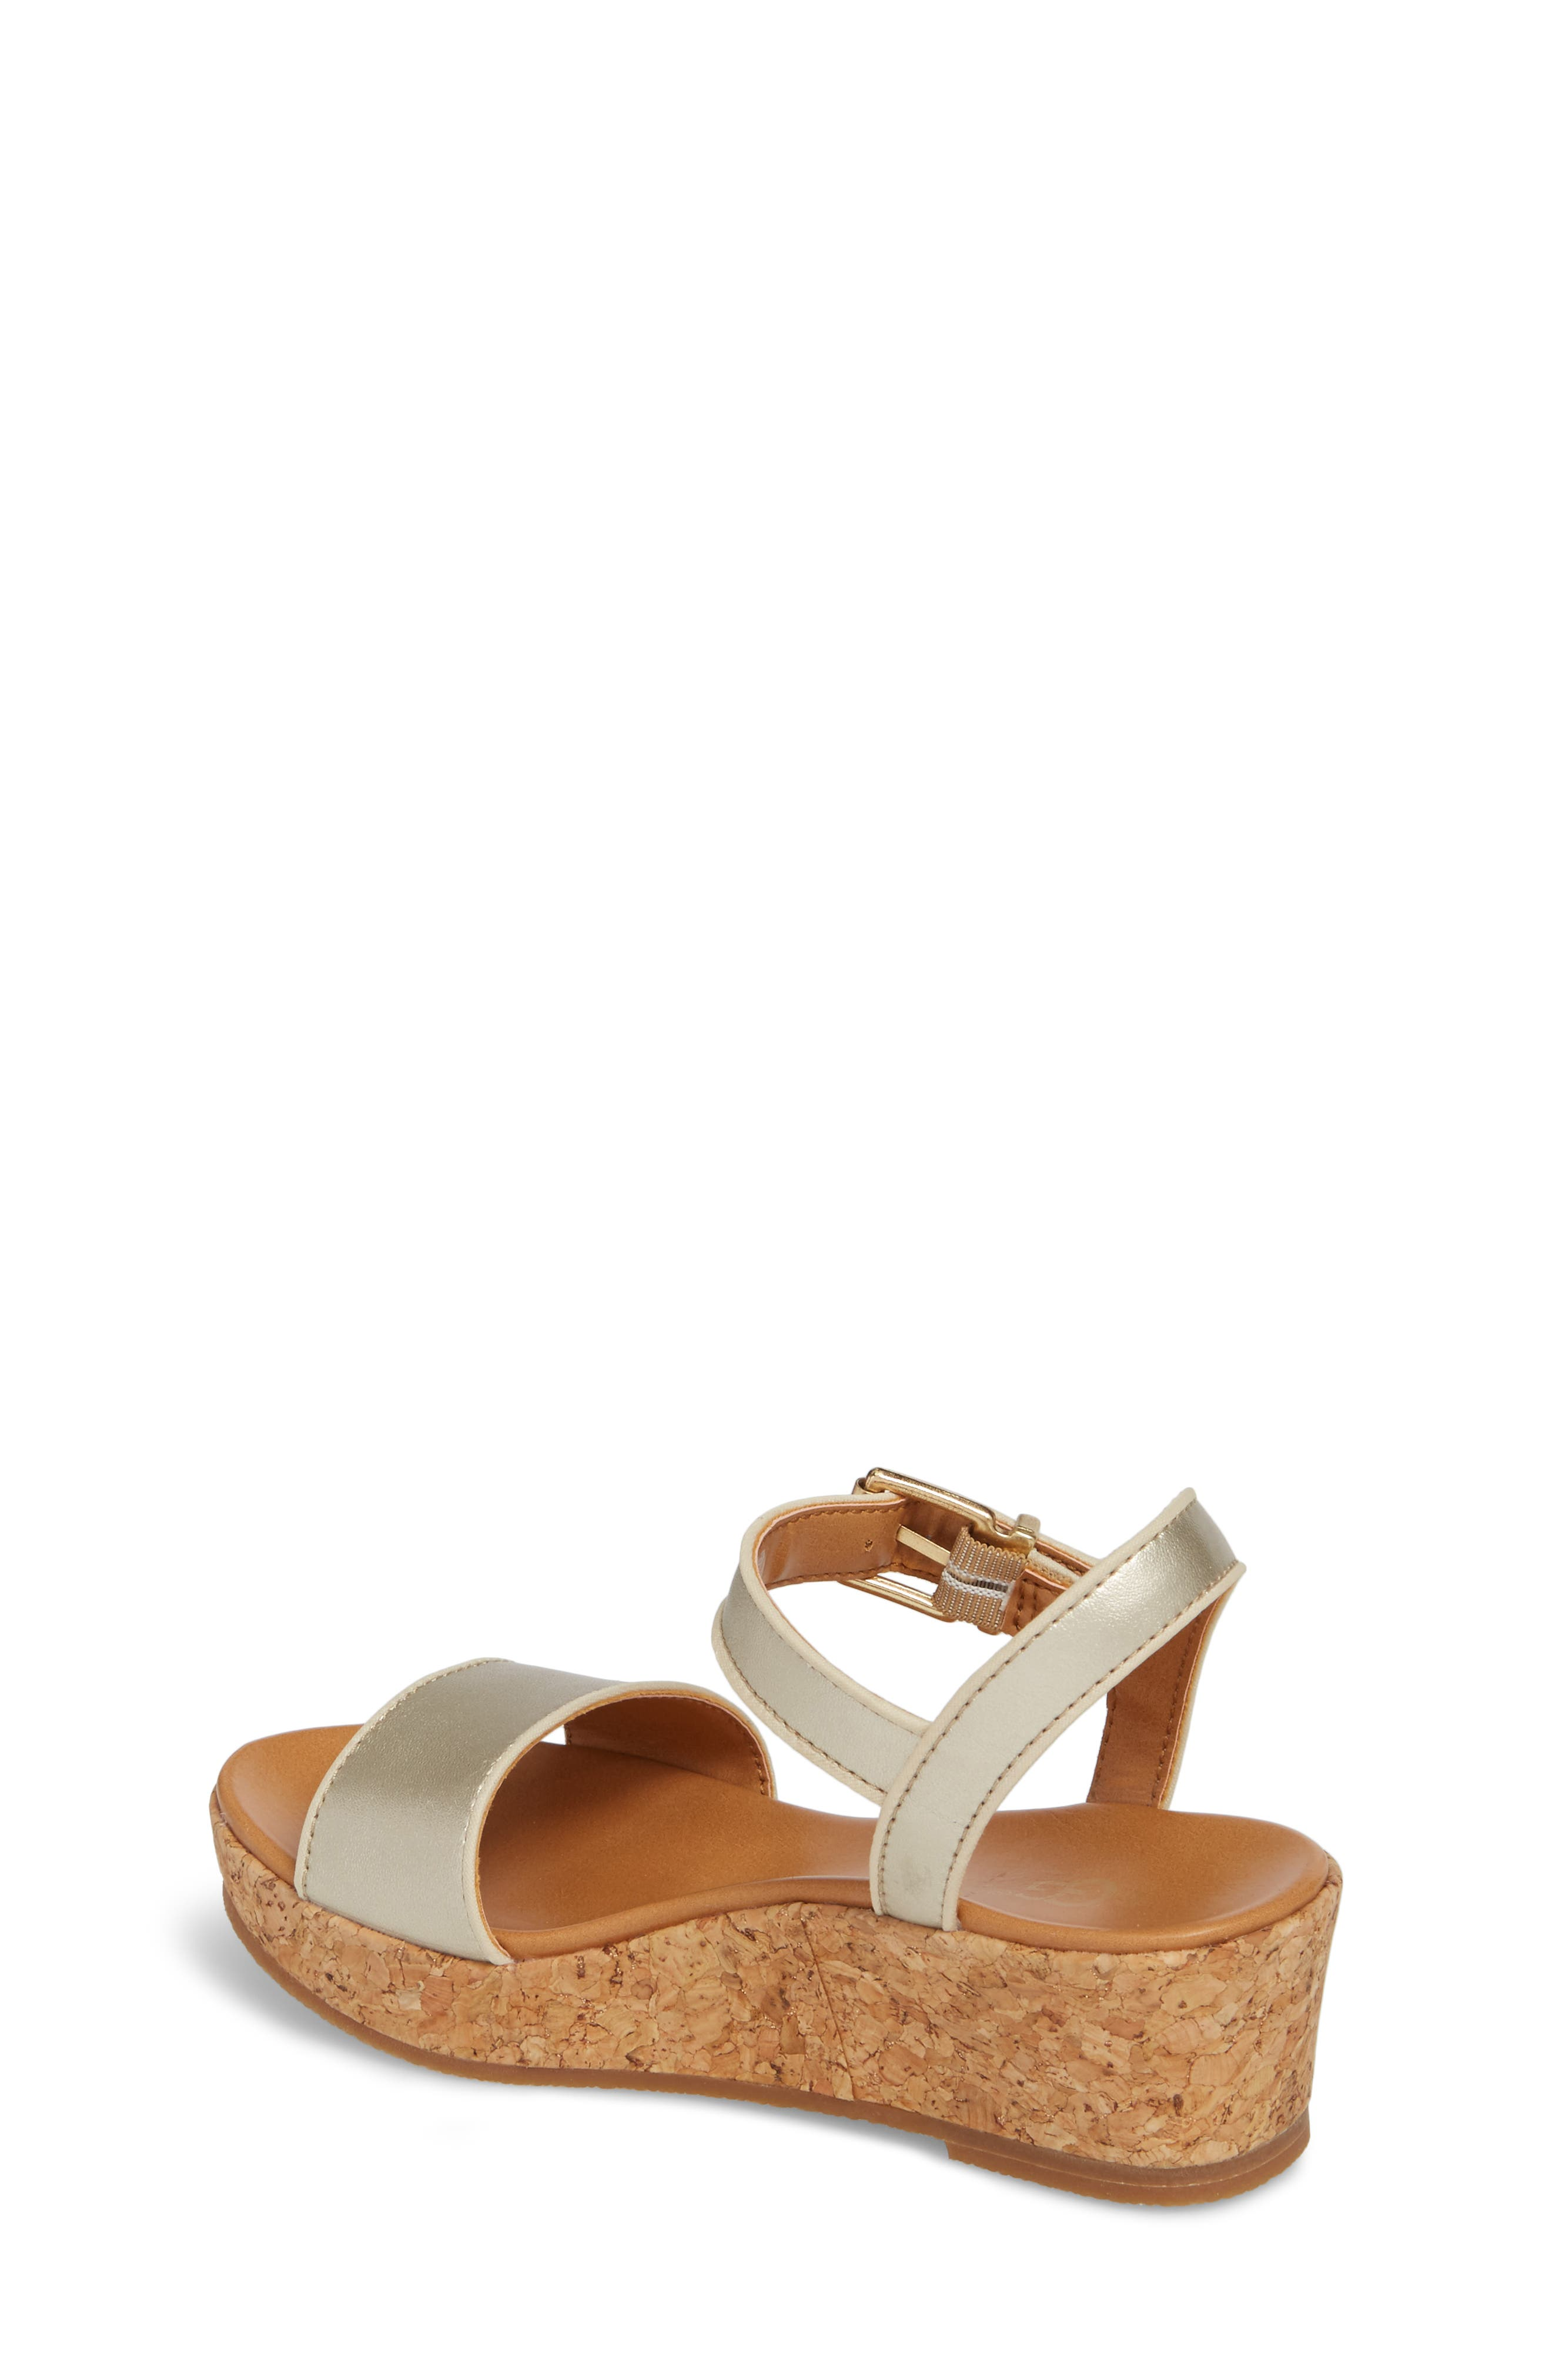 UGG<SUP>®</SUP>, Milley Wedge Sandal, Alternate thumbnail 2, color, GOLD